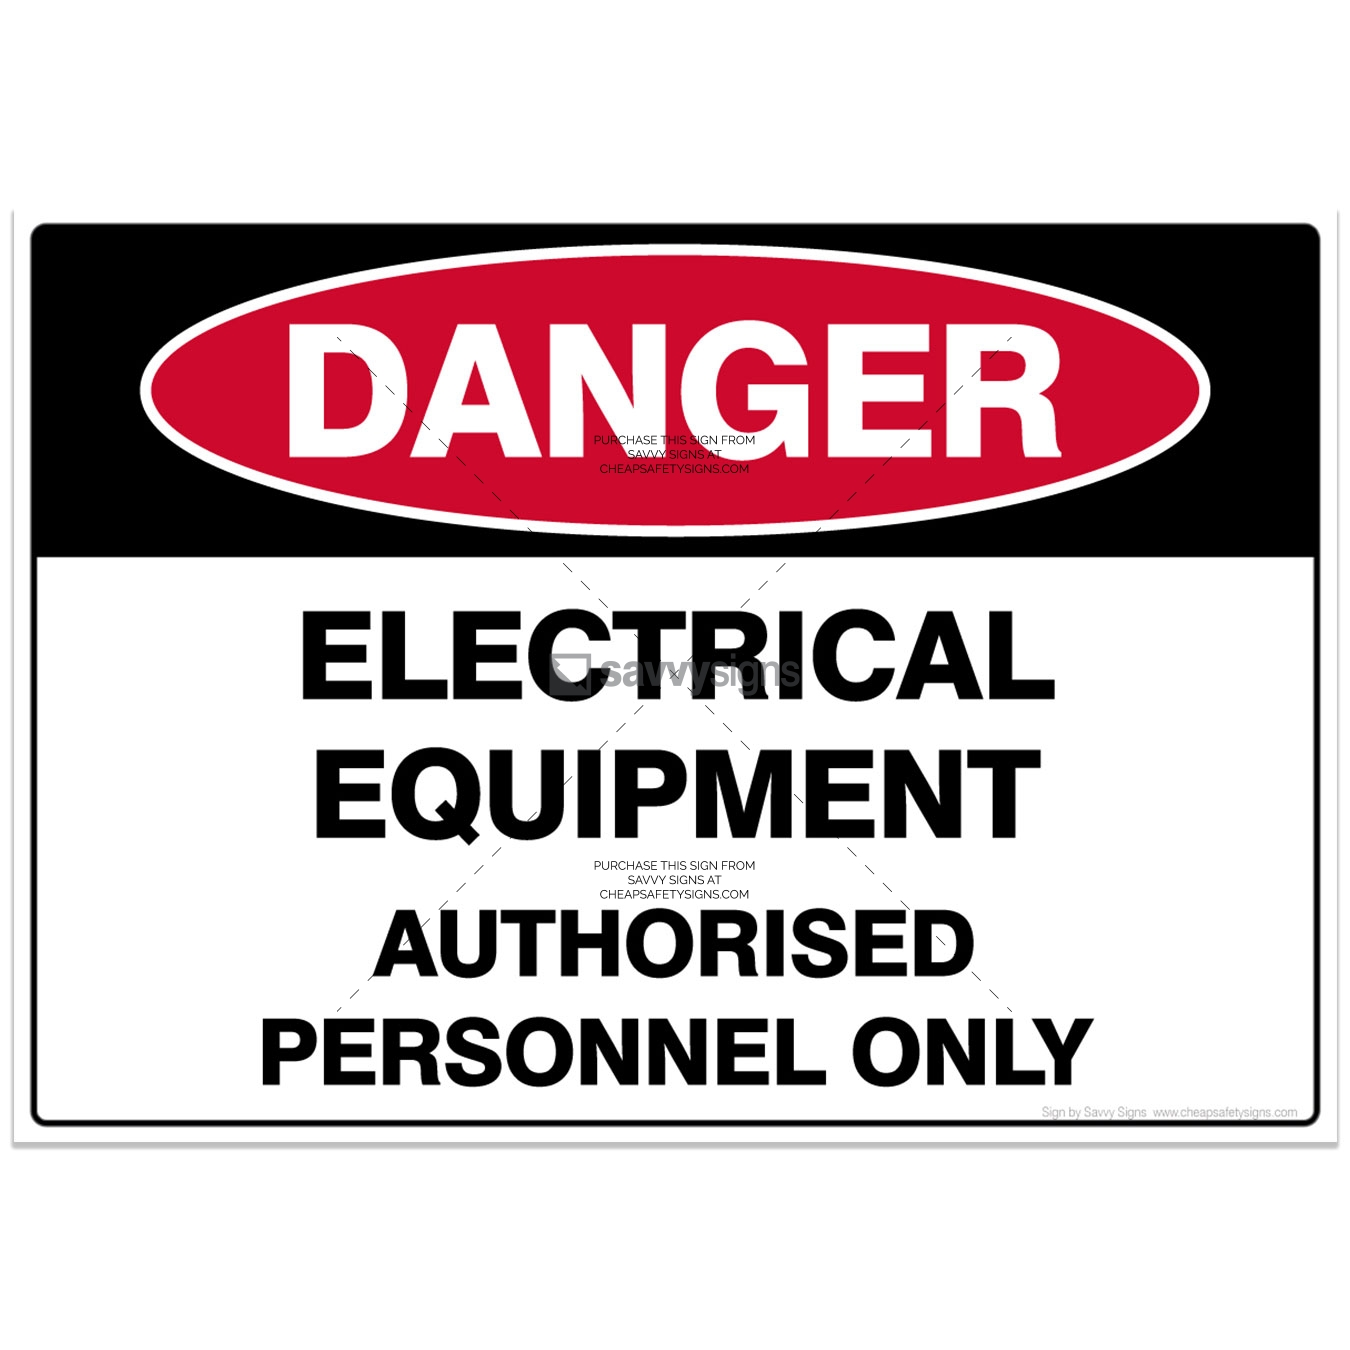 SSDAN3041-DANGER-Workplace-Safety-Signs_Savvy-Signs_v4.1